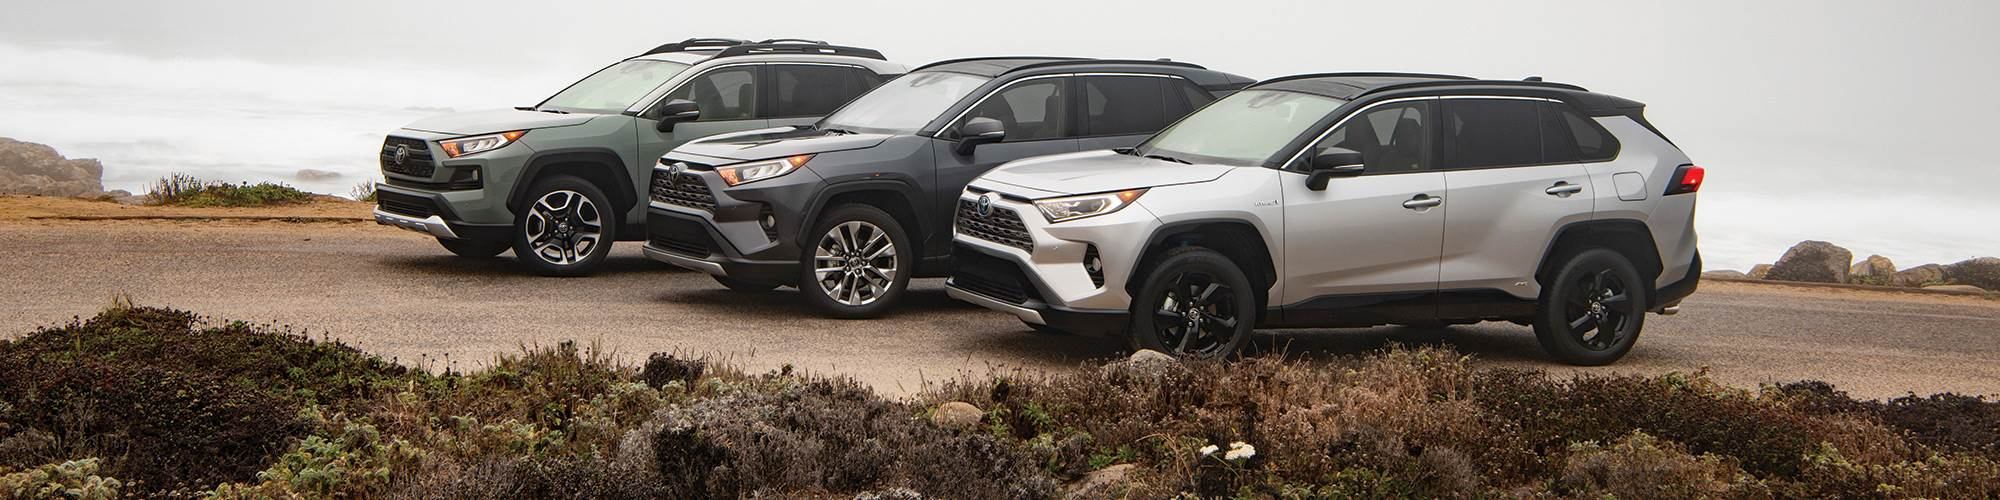 One way to address a wide base of consumers is to design the trims with distinction so that there is clear differentiation, as can be discerned here with the XSE HV (front) with two-tone exterior paint scheme; the Limited (middle) with 19-inch wheels and a gray-metallic grille; and the Adventure (rear), with larger over-fenders and bumper, and matte-black accents.